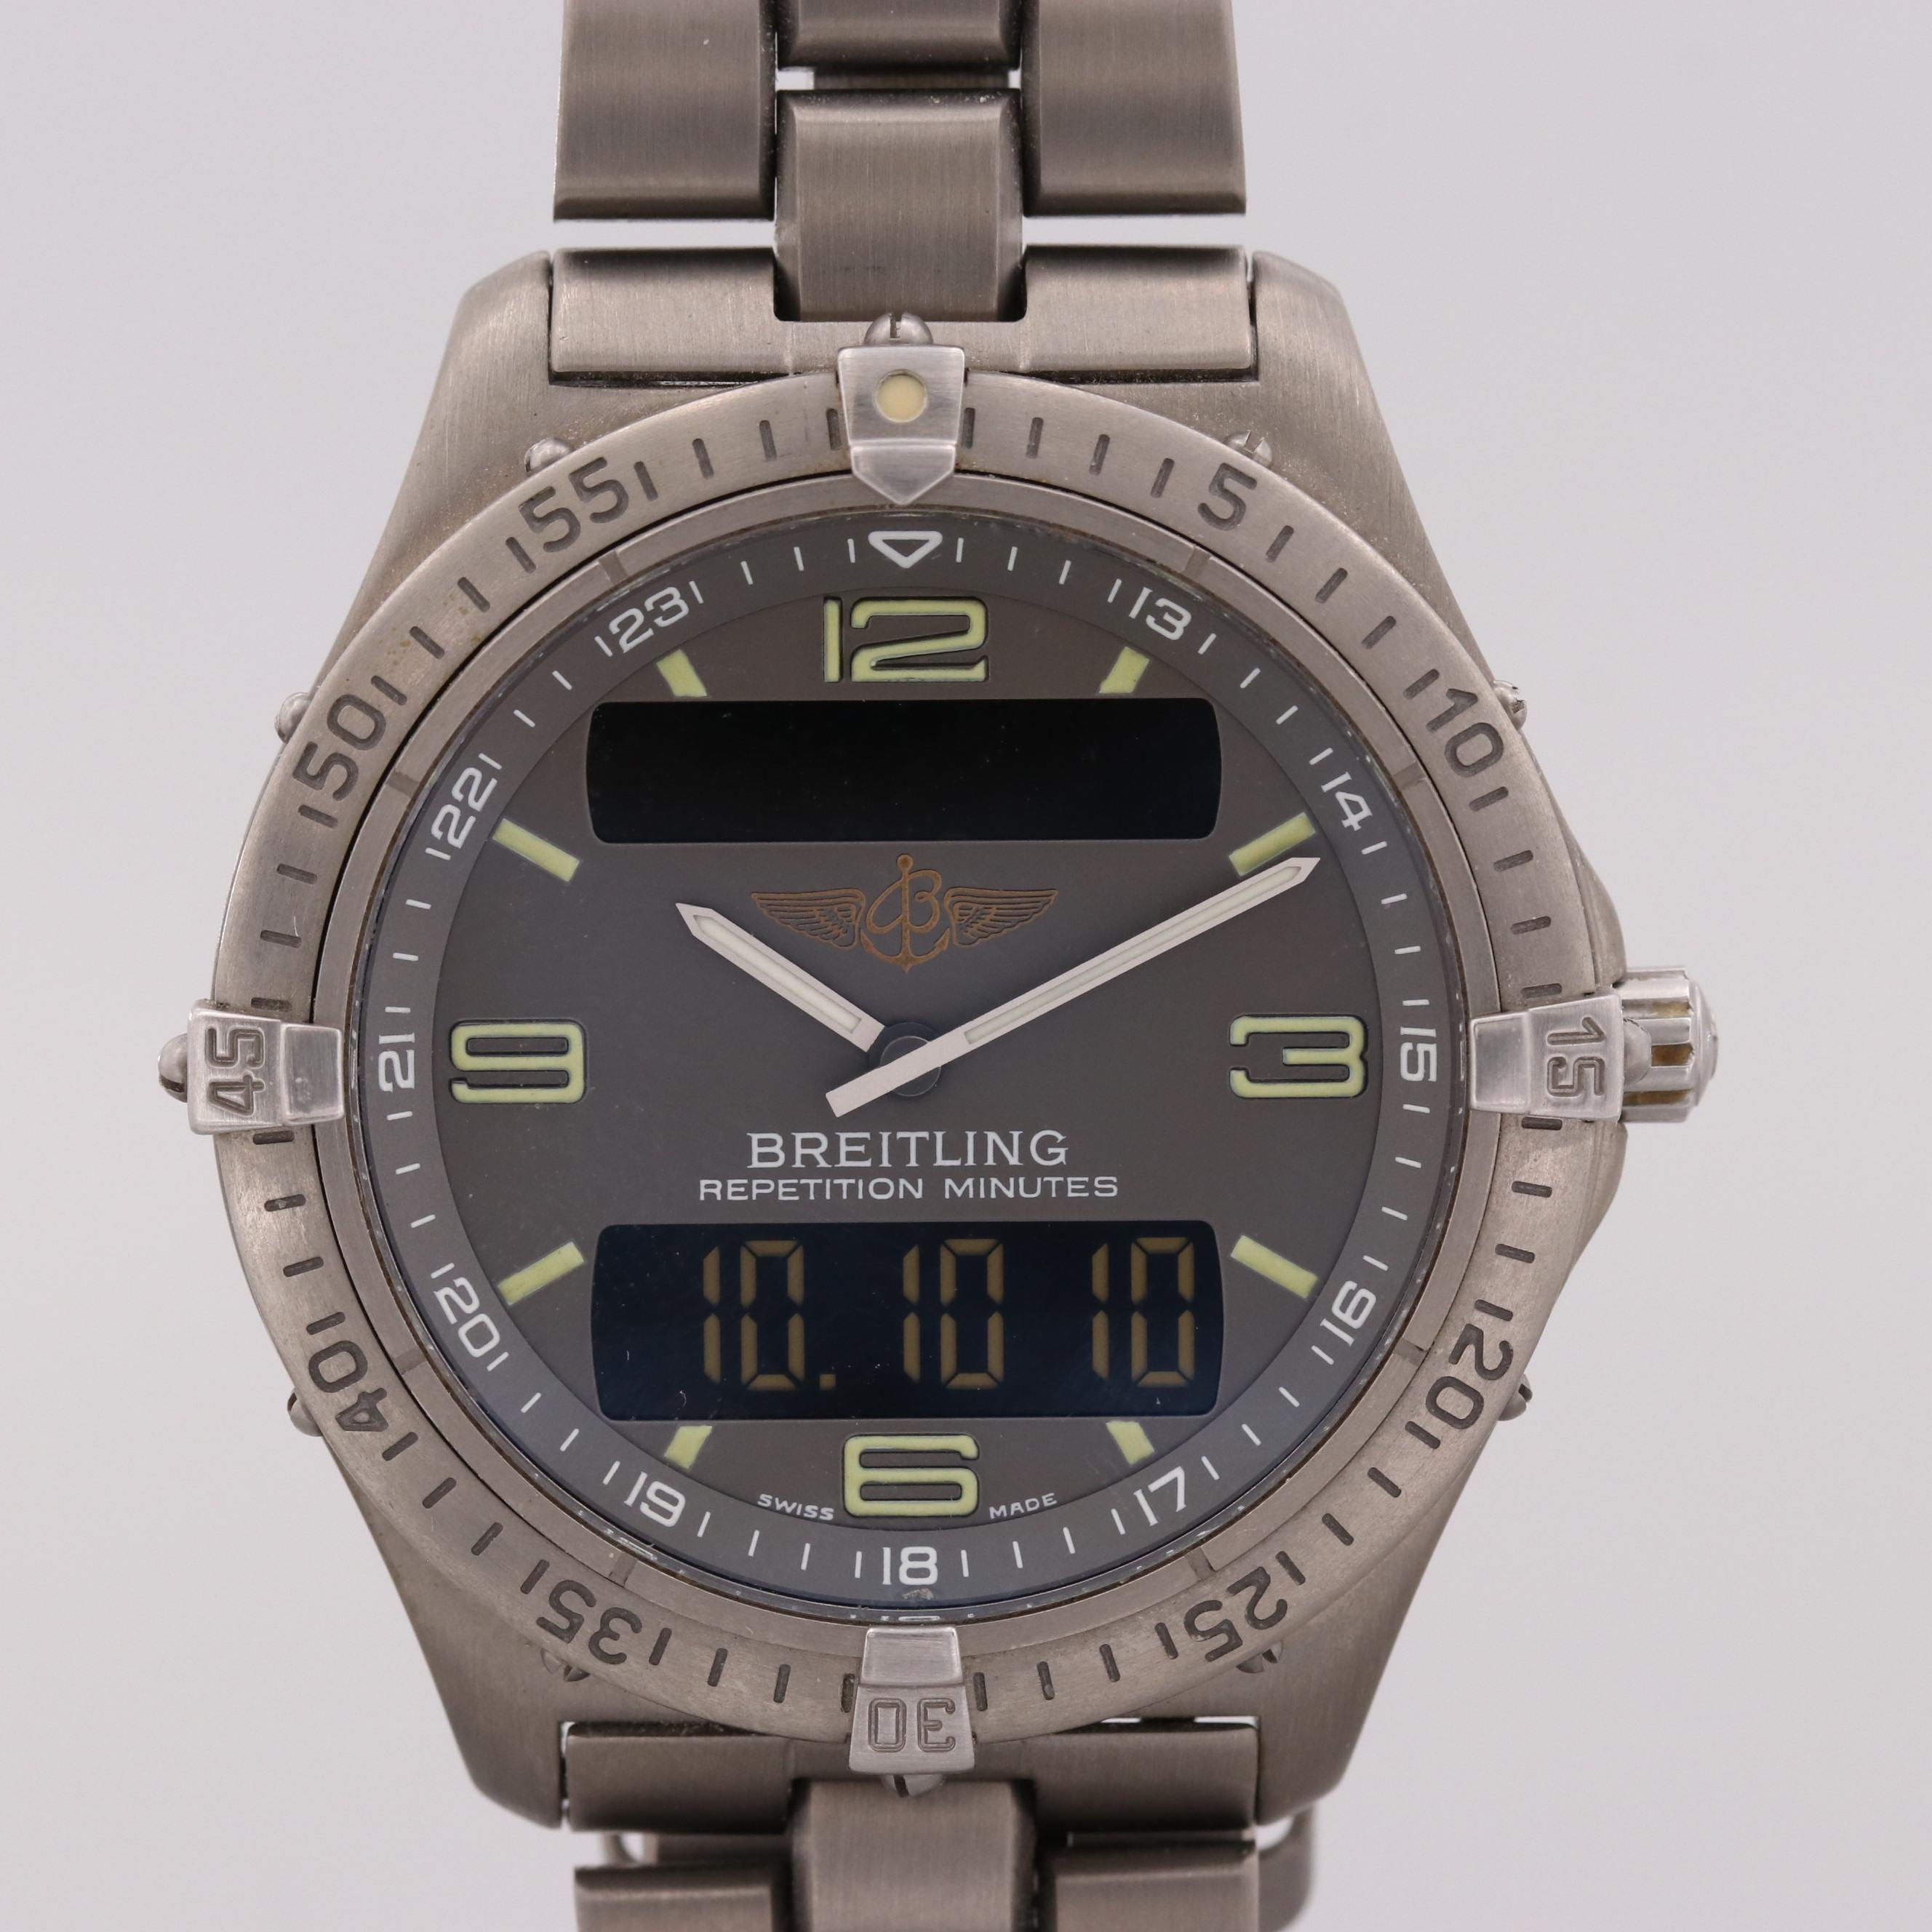 Breitling Aerospace Titanium Analog/Digital Quartz Wristwatch